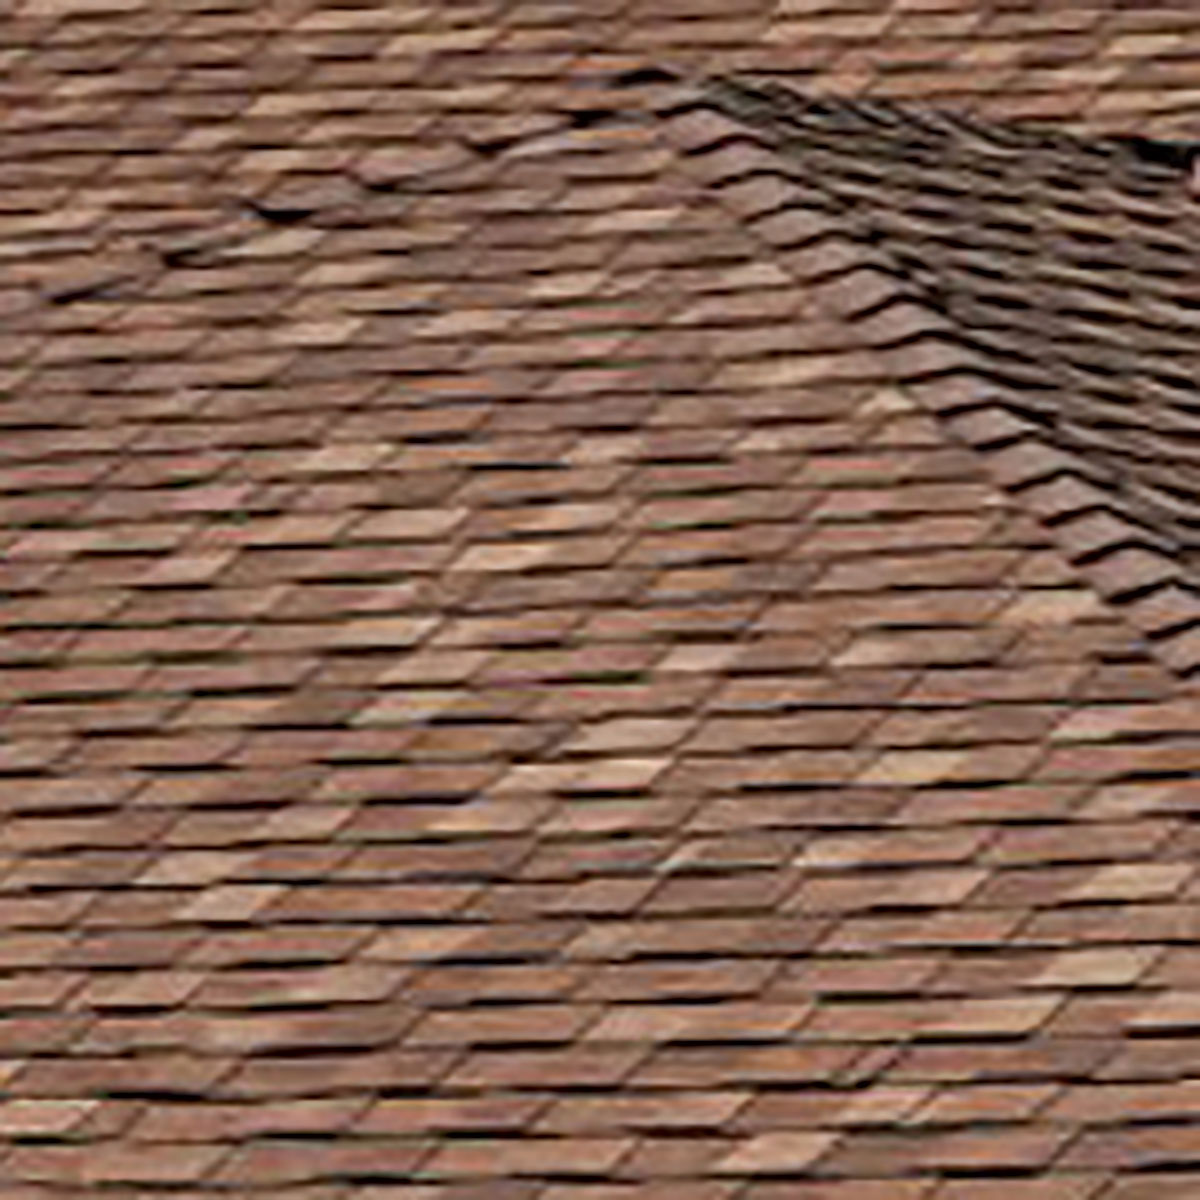 Wood Shims Lowes | Heritage Shingles | How to Install Cedar Shingles